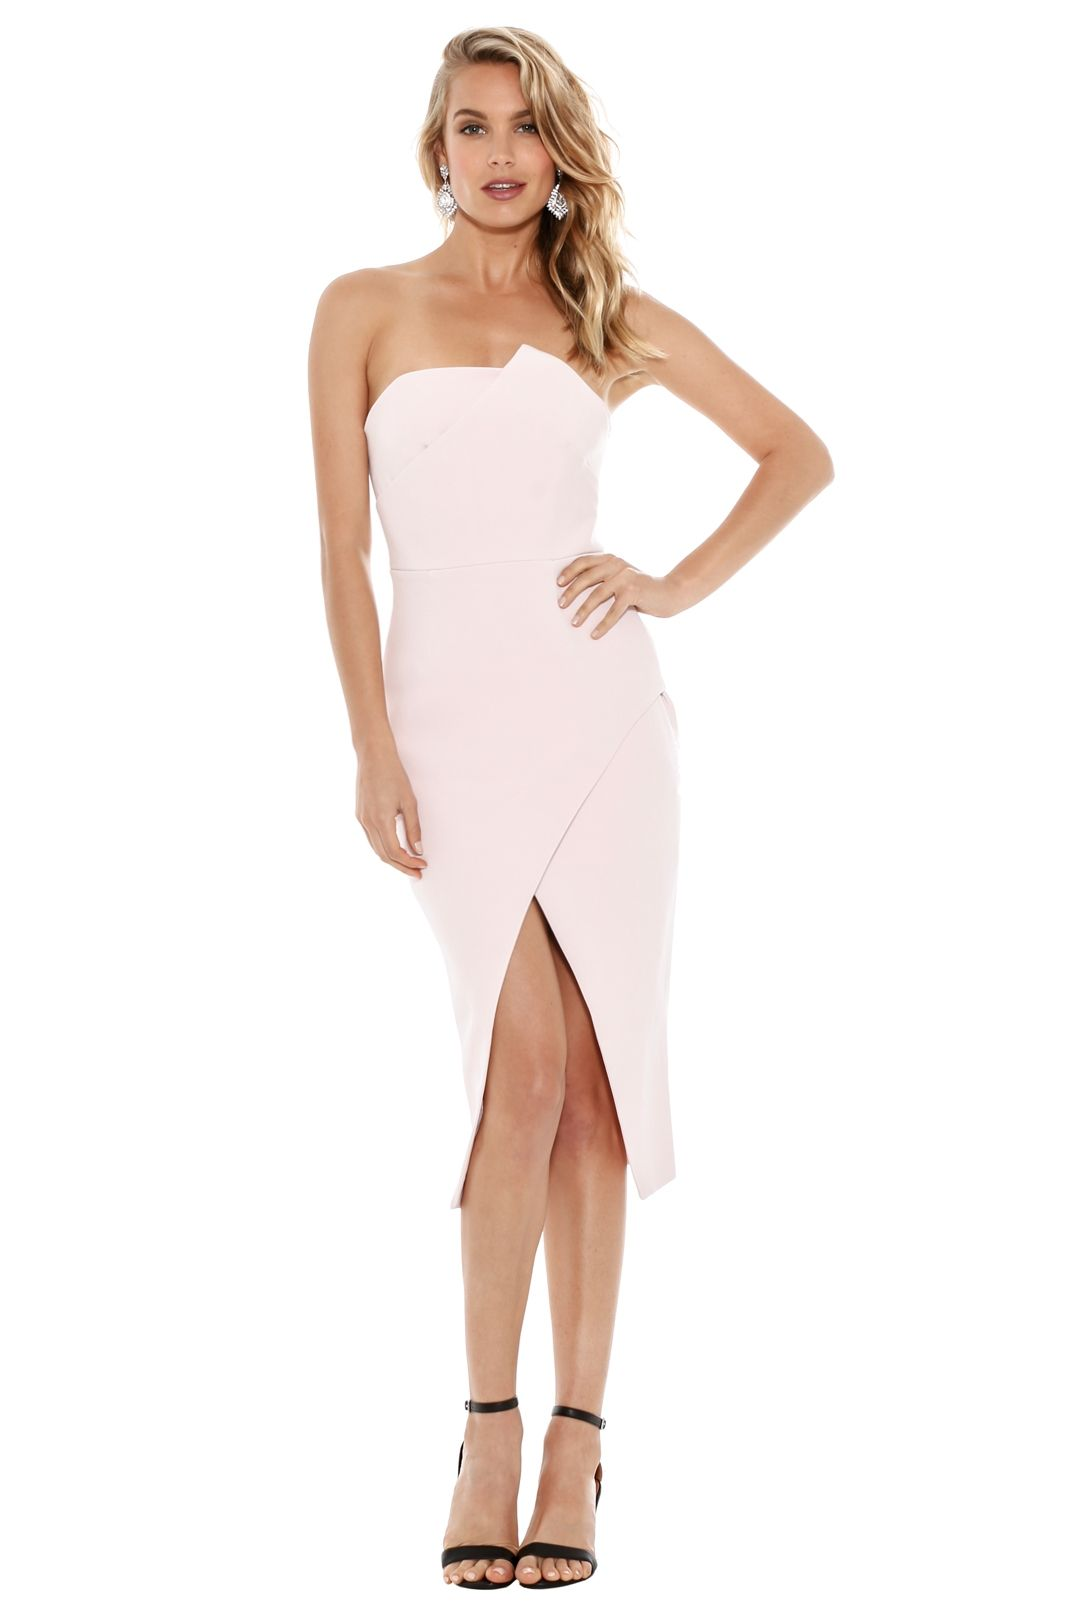 Talulah - Could It Be Midi Dress - Light Pink - Front